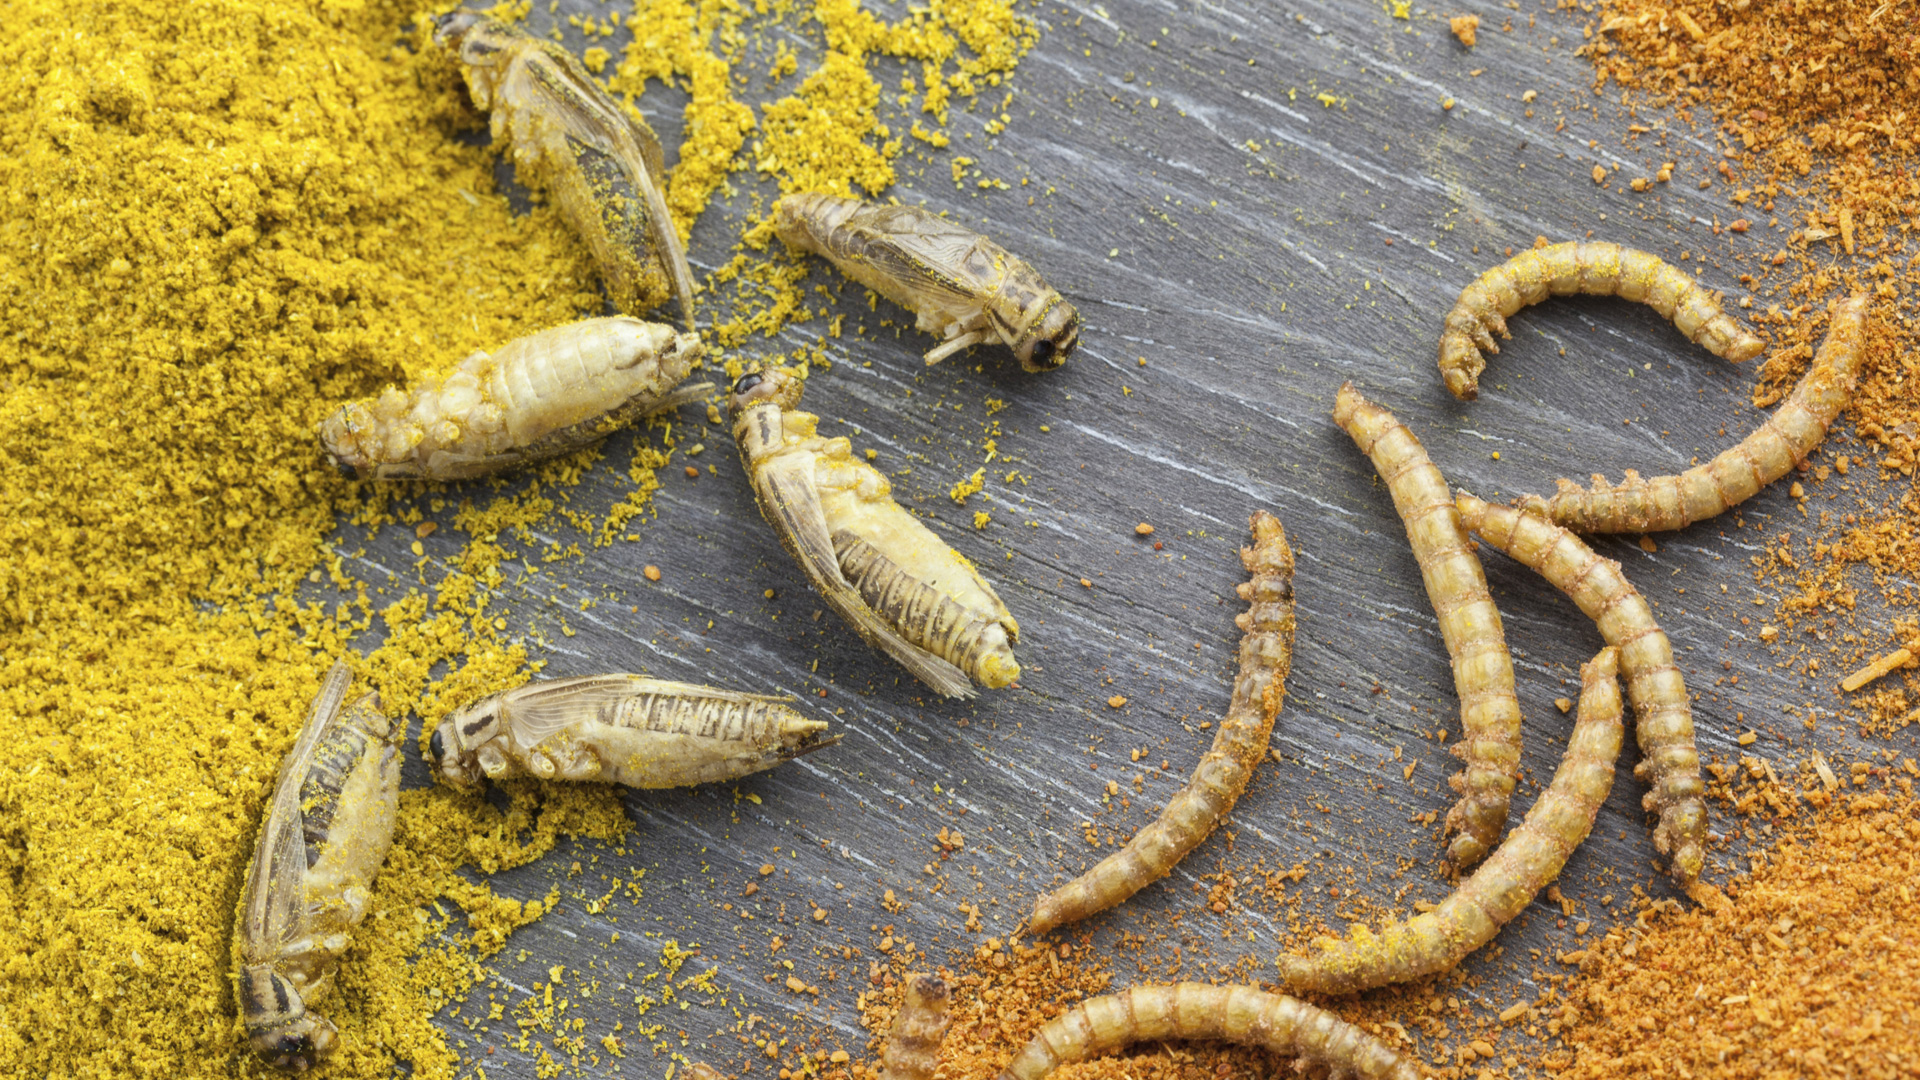 Grasshopers and mealworms